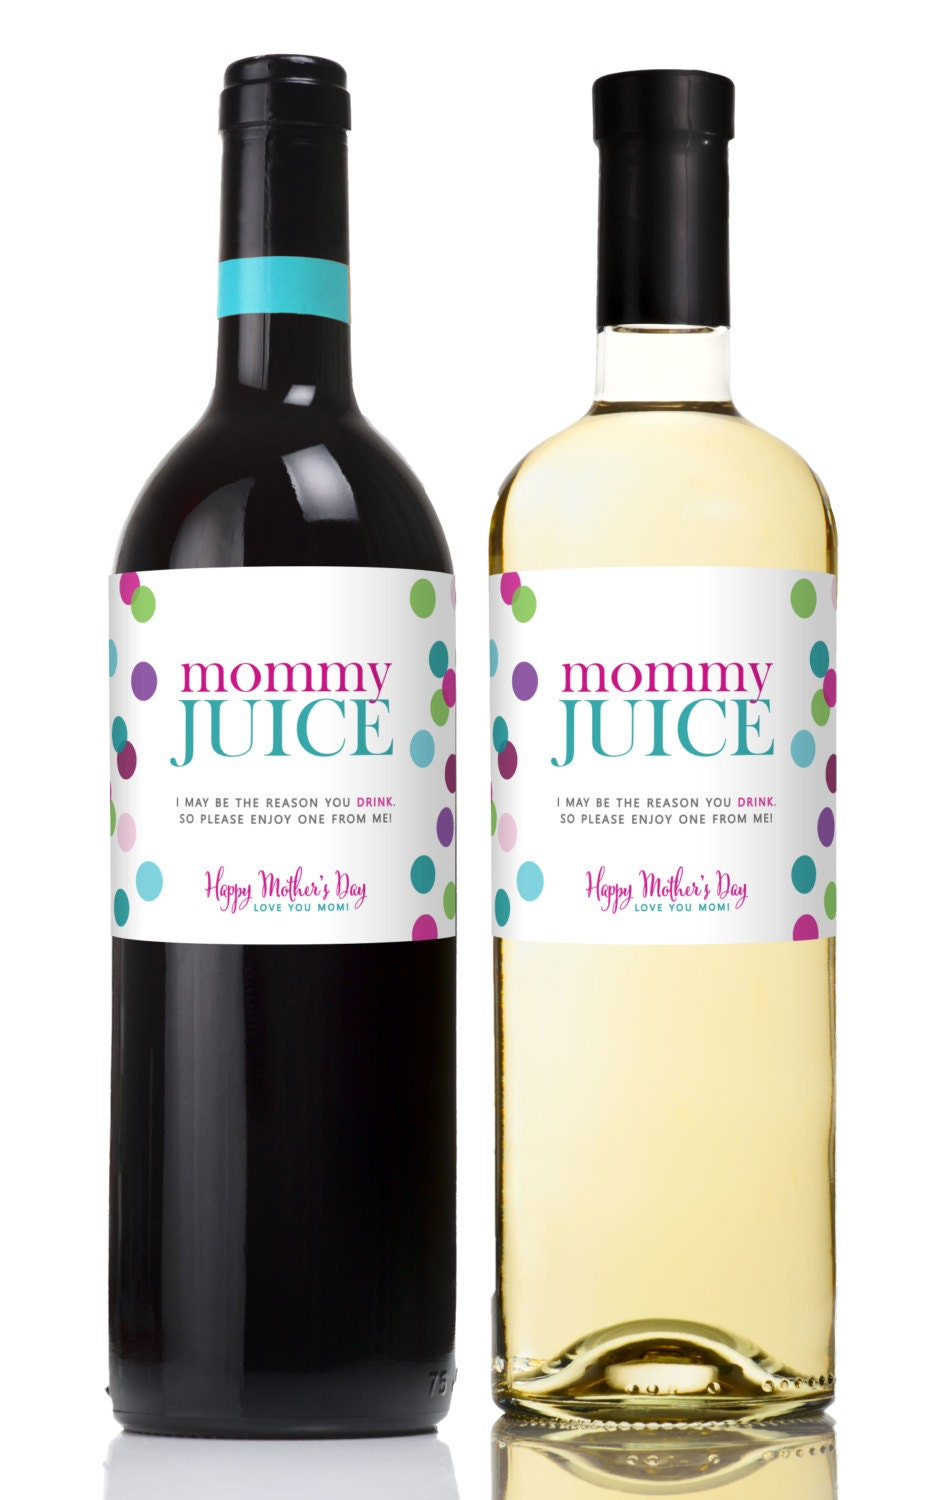 Sly image with printable wine labels